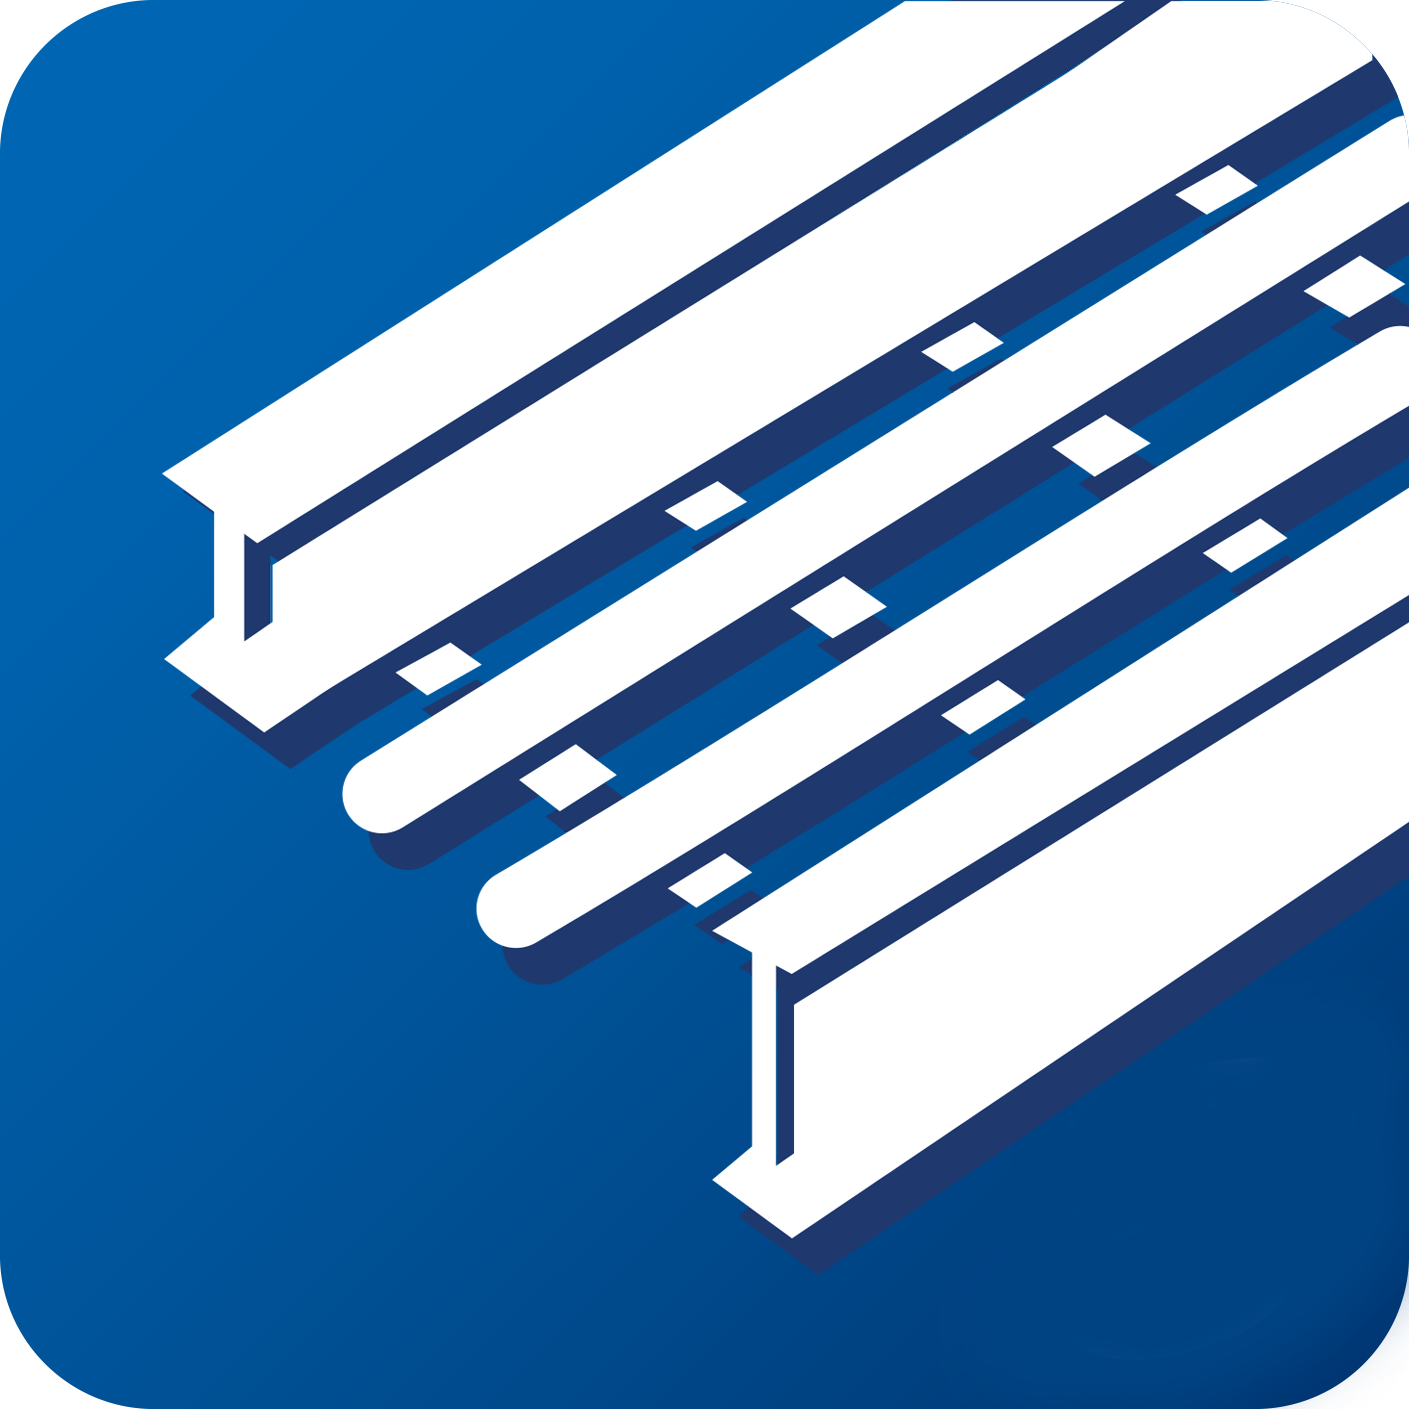 icon for BRCM product